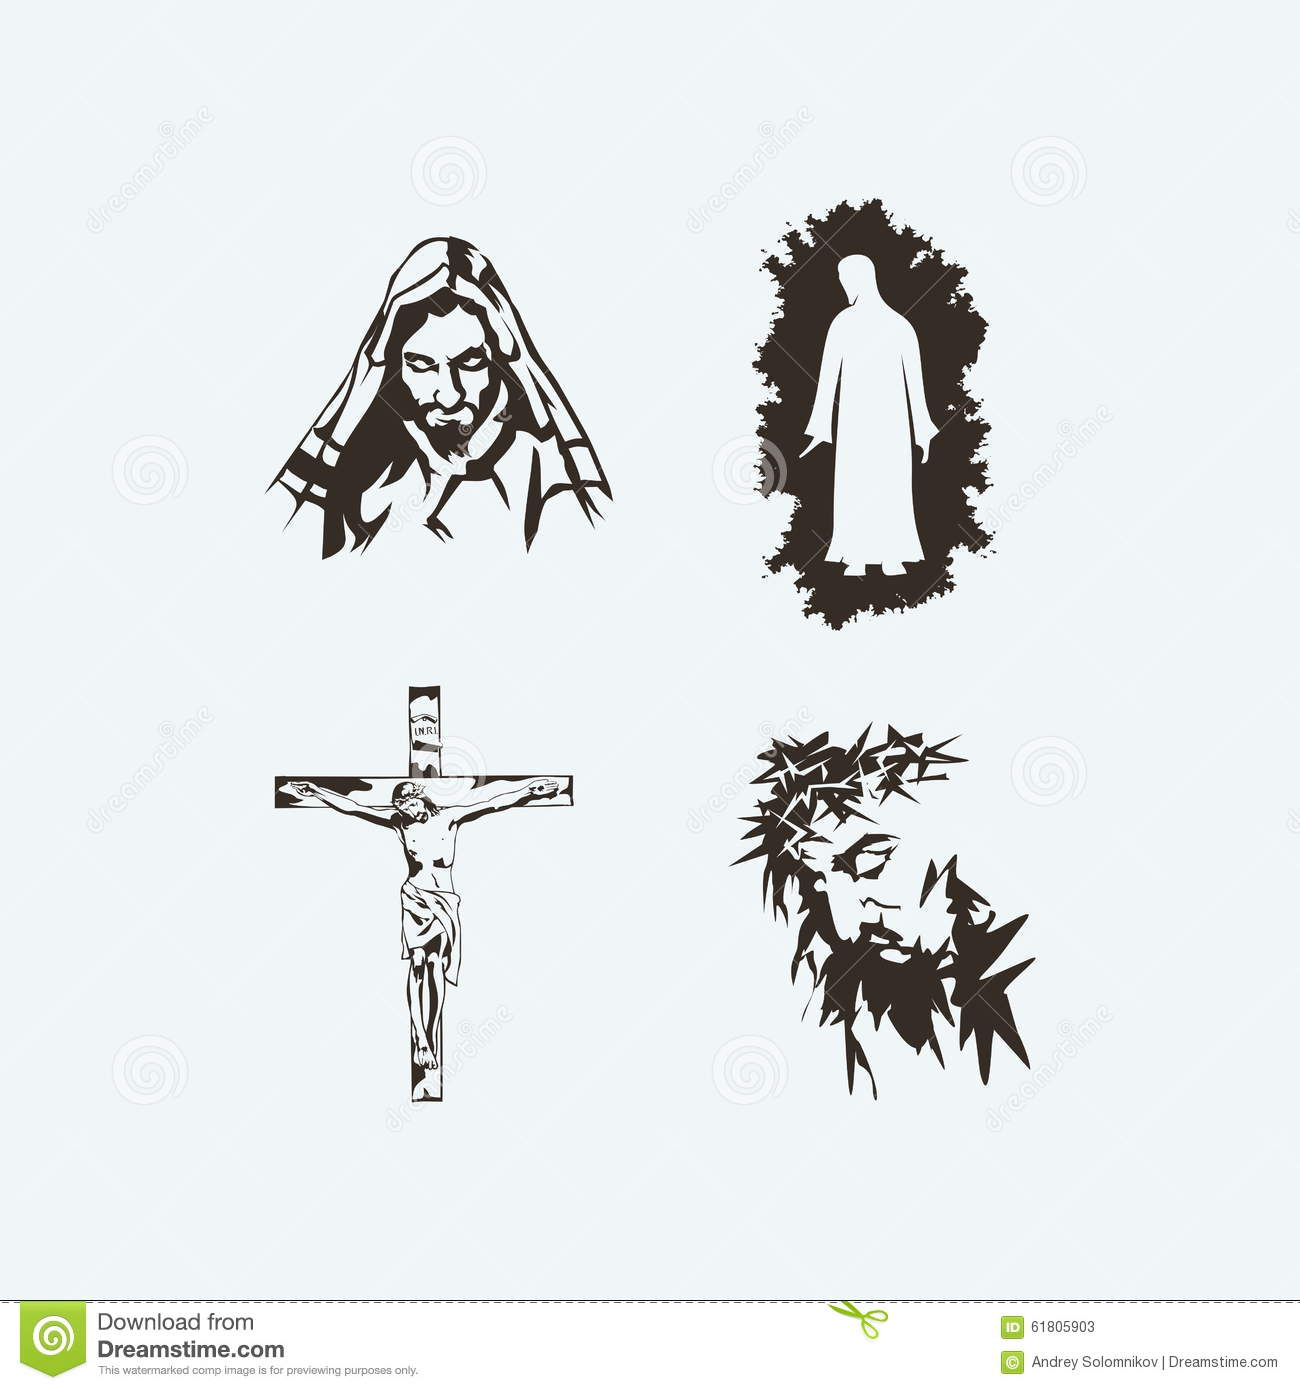 Stock Photo: Illustrations of Jesus Christ hand-drawn. Image: